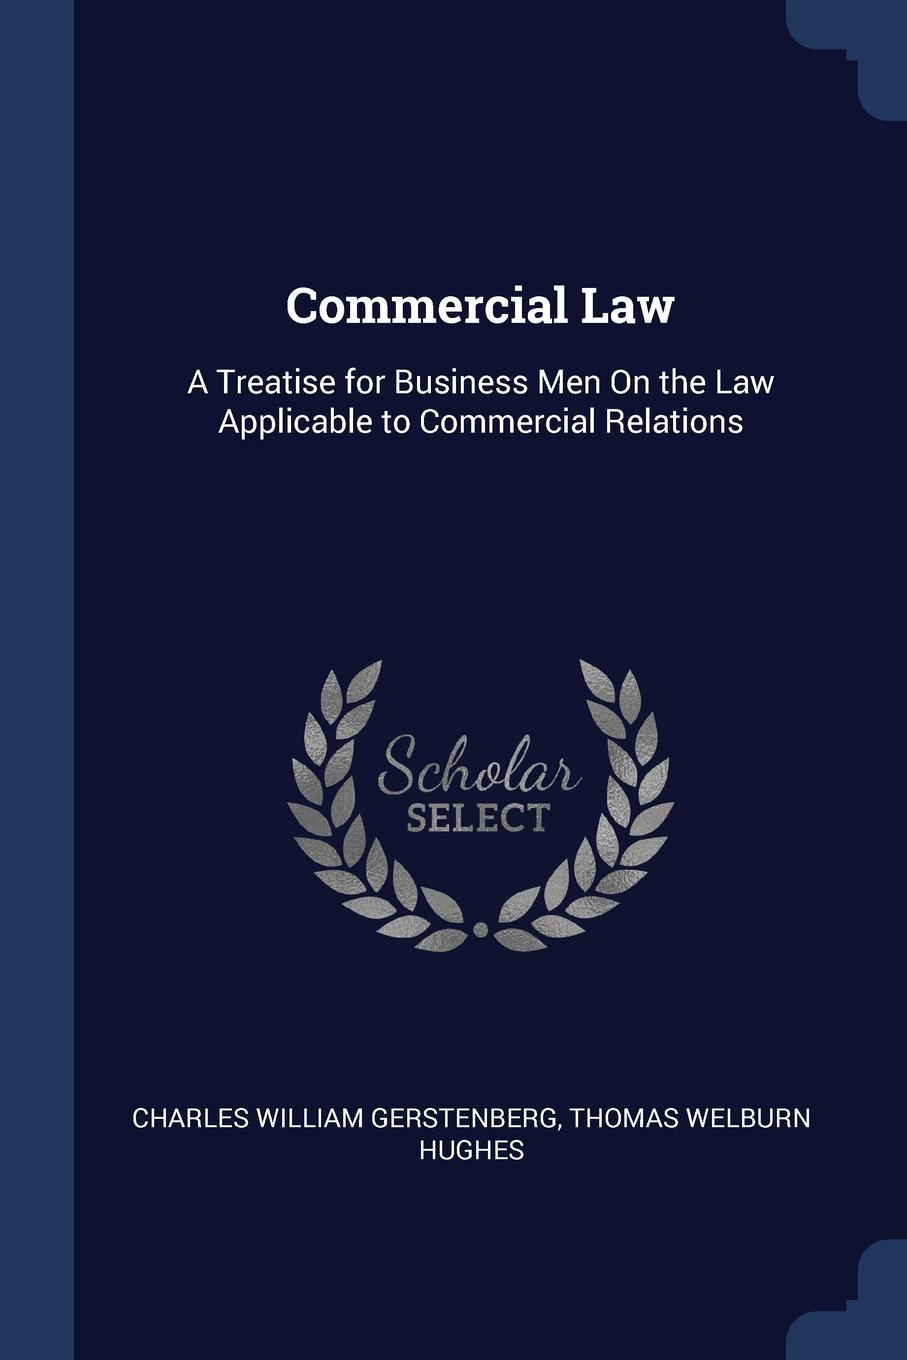 Charles William Gerstenberg, Thomas Welburn Hughes Commercial Law. A Treatise for Business Men On the Law Applicable to Relations